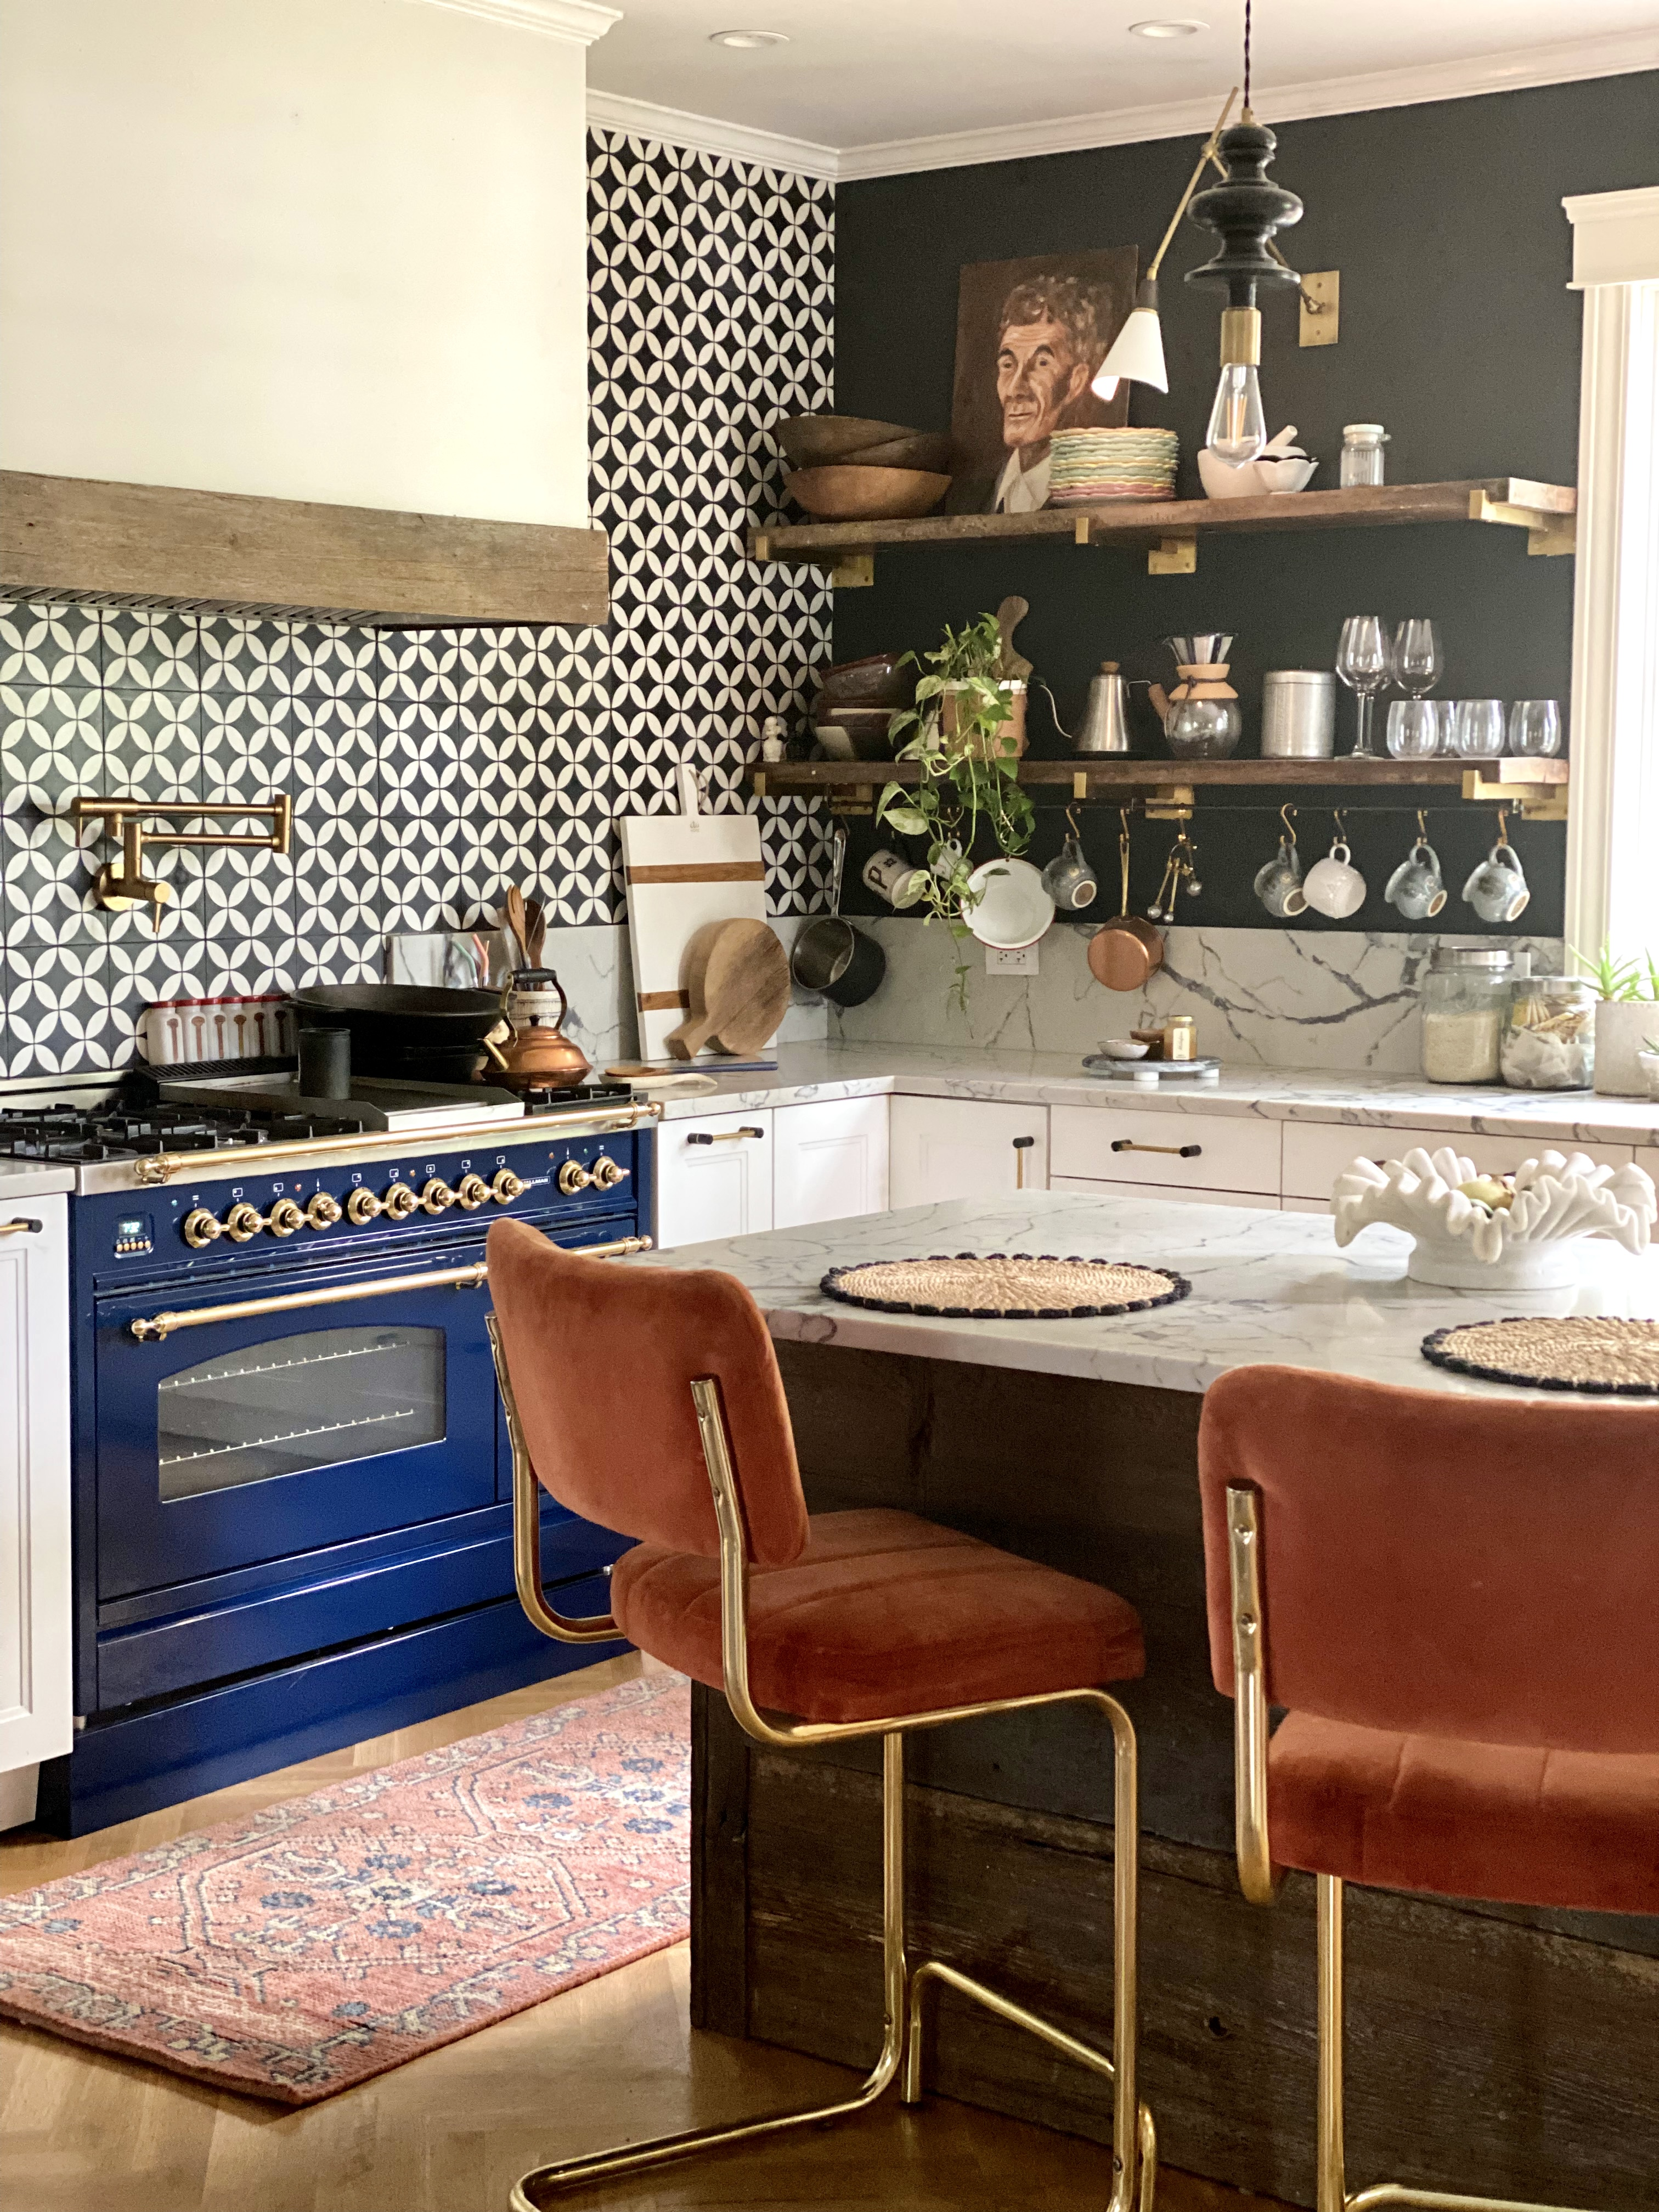 My Favorite Kitchen Finds from Serena & Lily